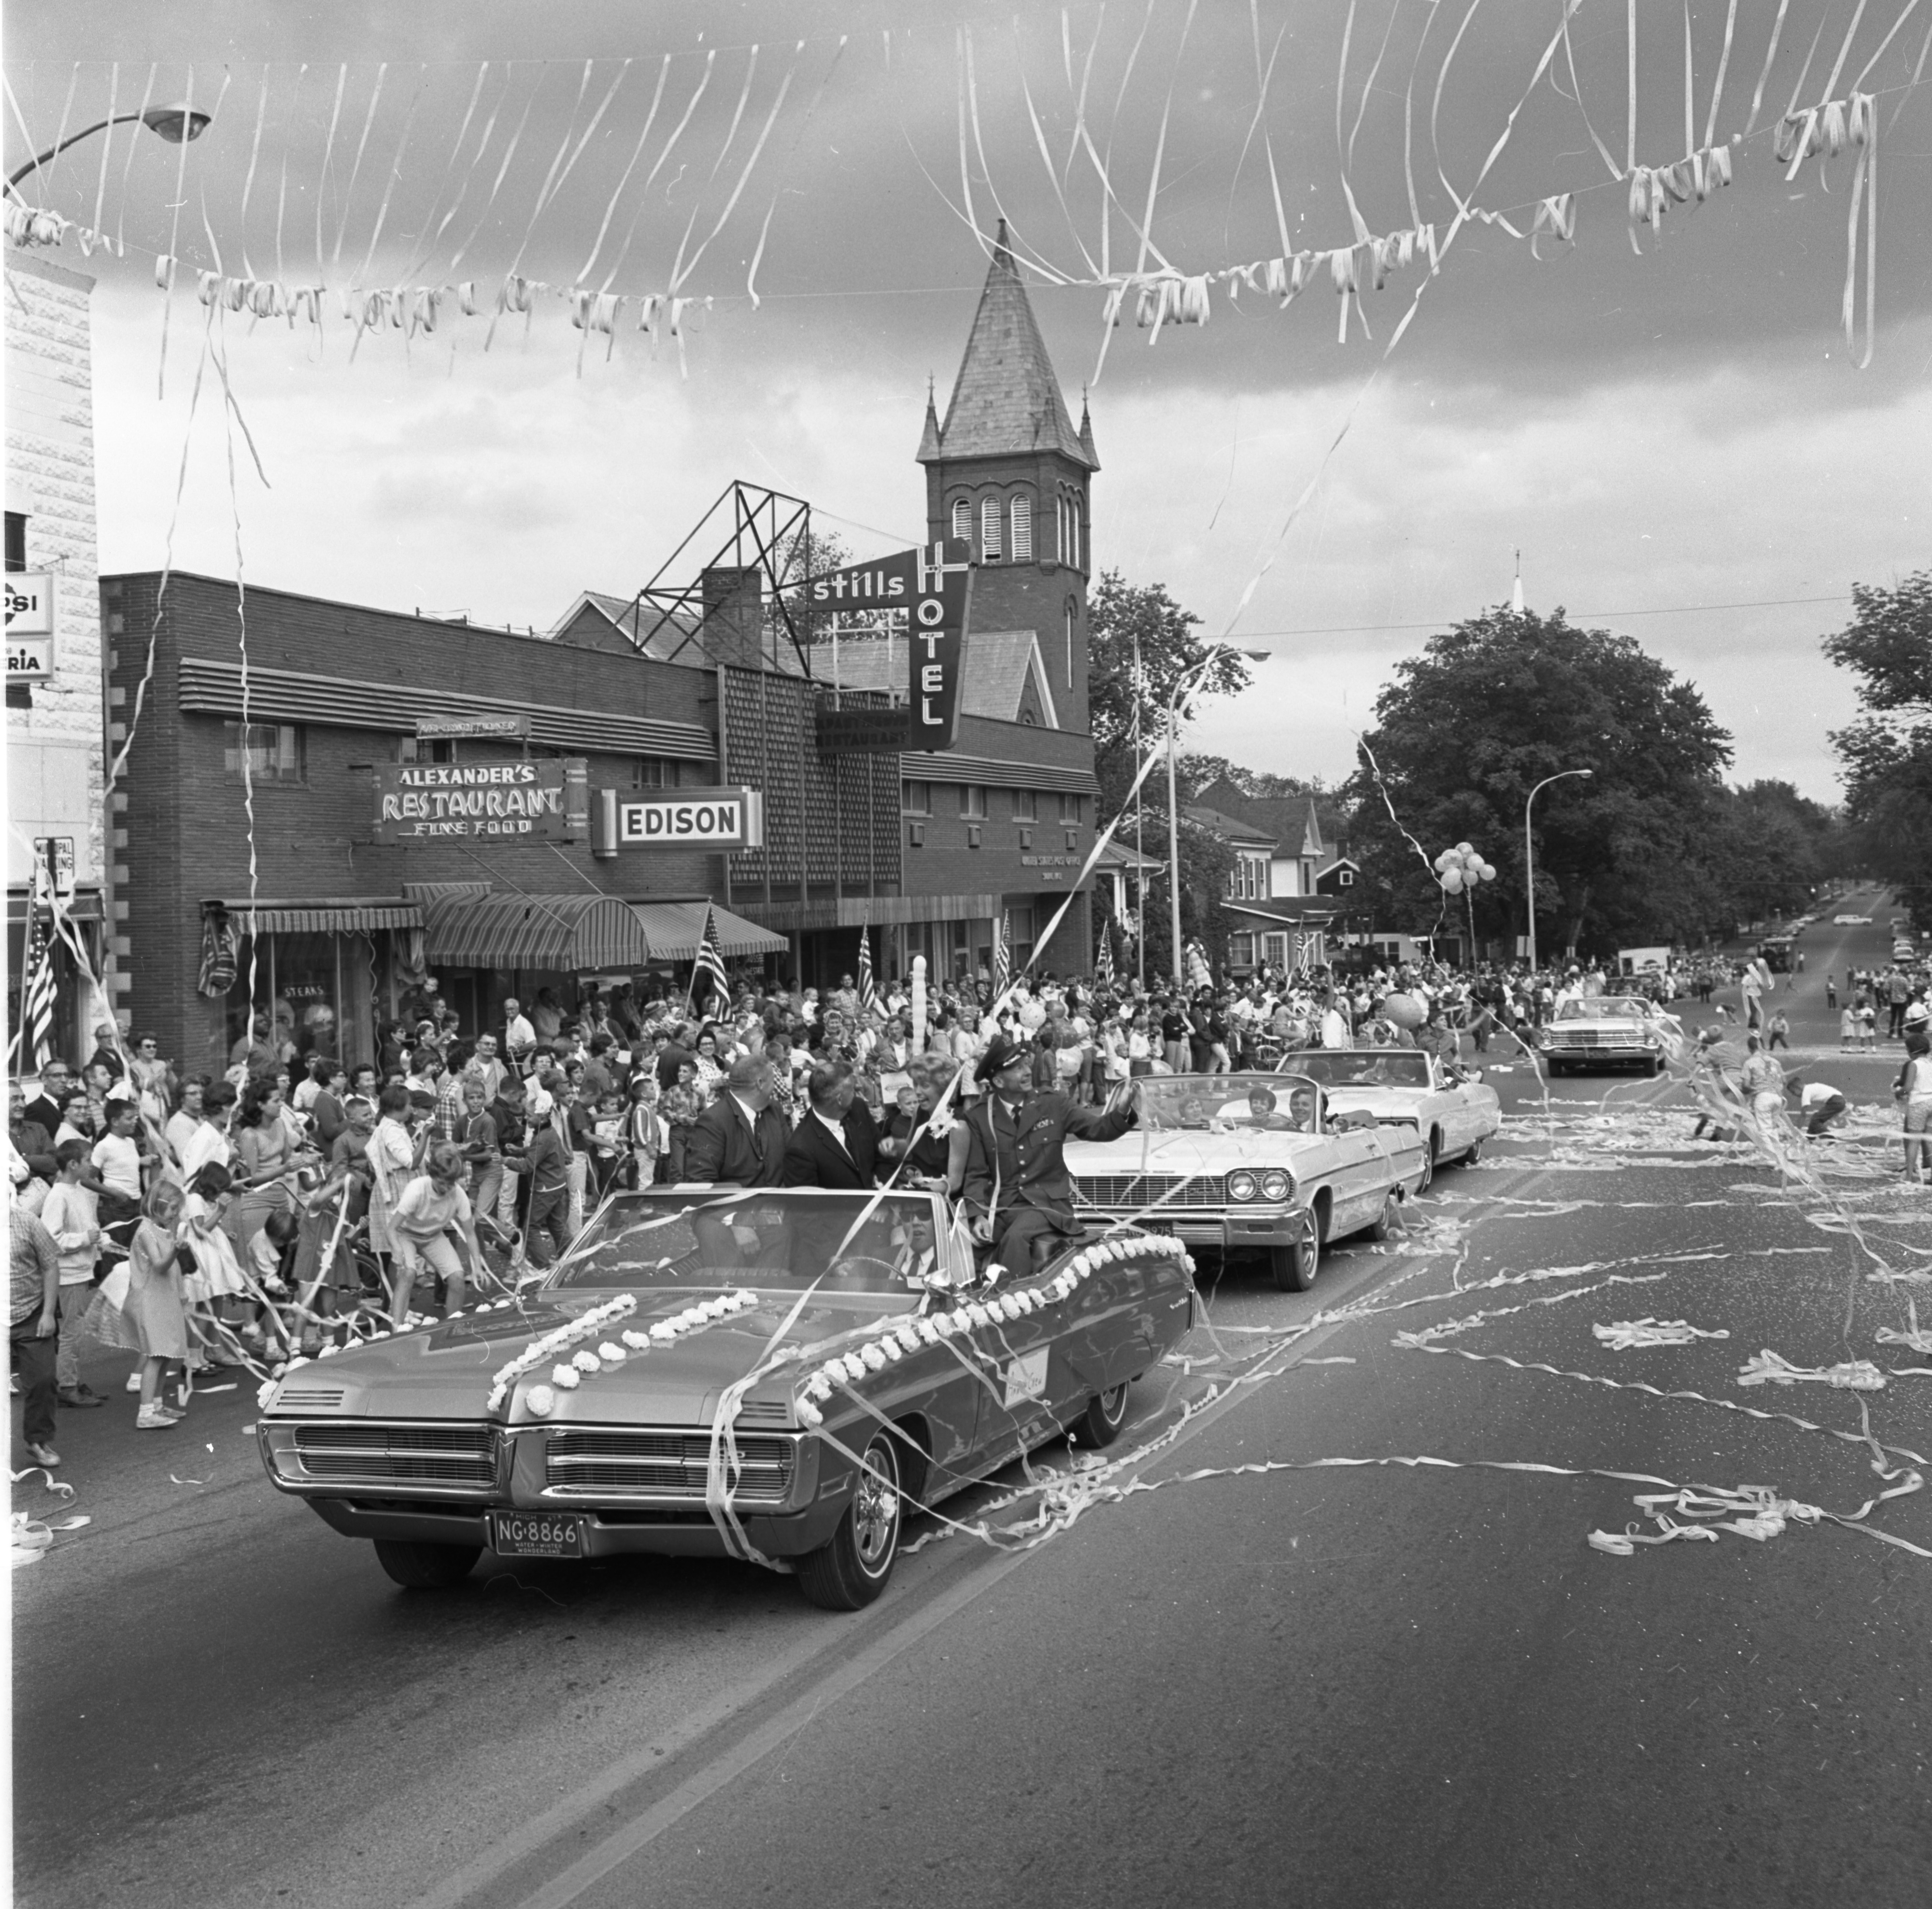 Saline Ticker-Tape Parade Honoring Aviator Ann Pellegreno's Amelia Earhart Commemorative Flight, July 1967 image